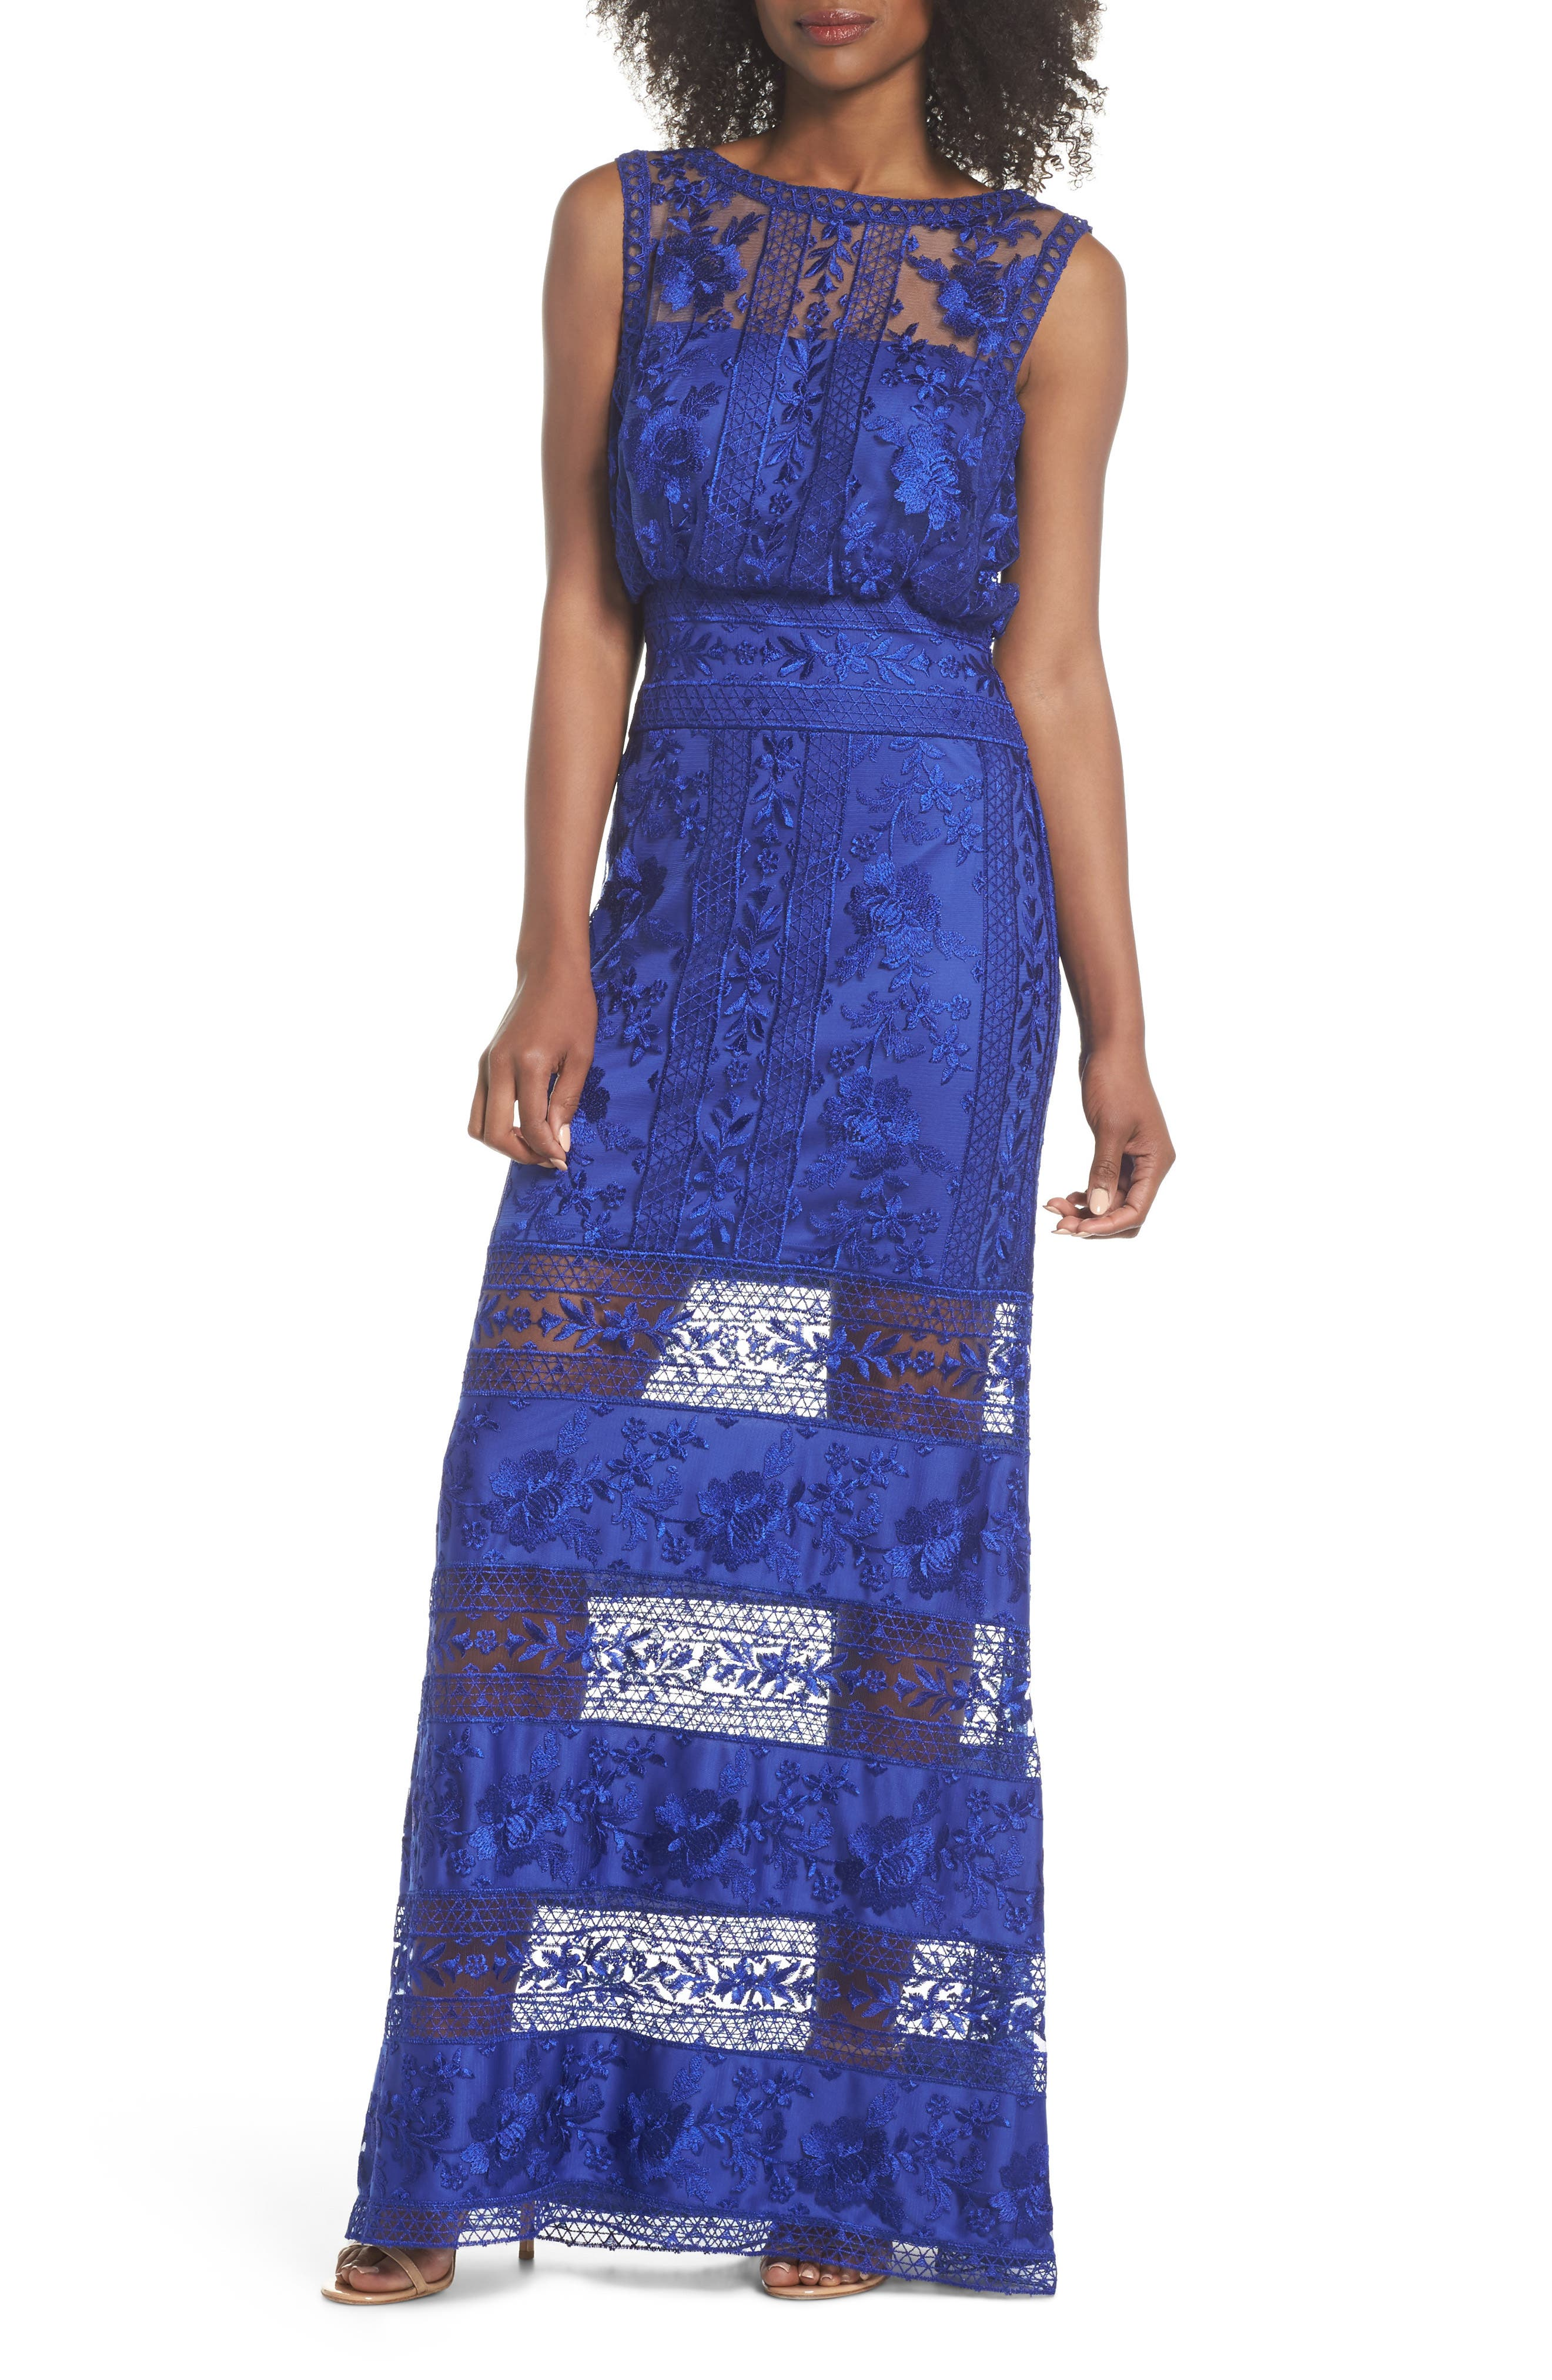 Kaisra Embroidered Lace Gown,                             Main thumbnail 1, color,                             400